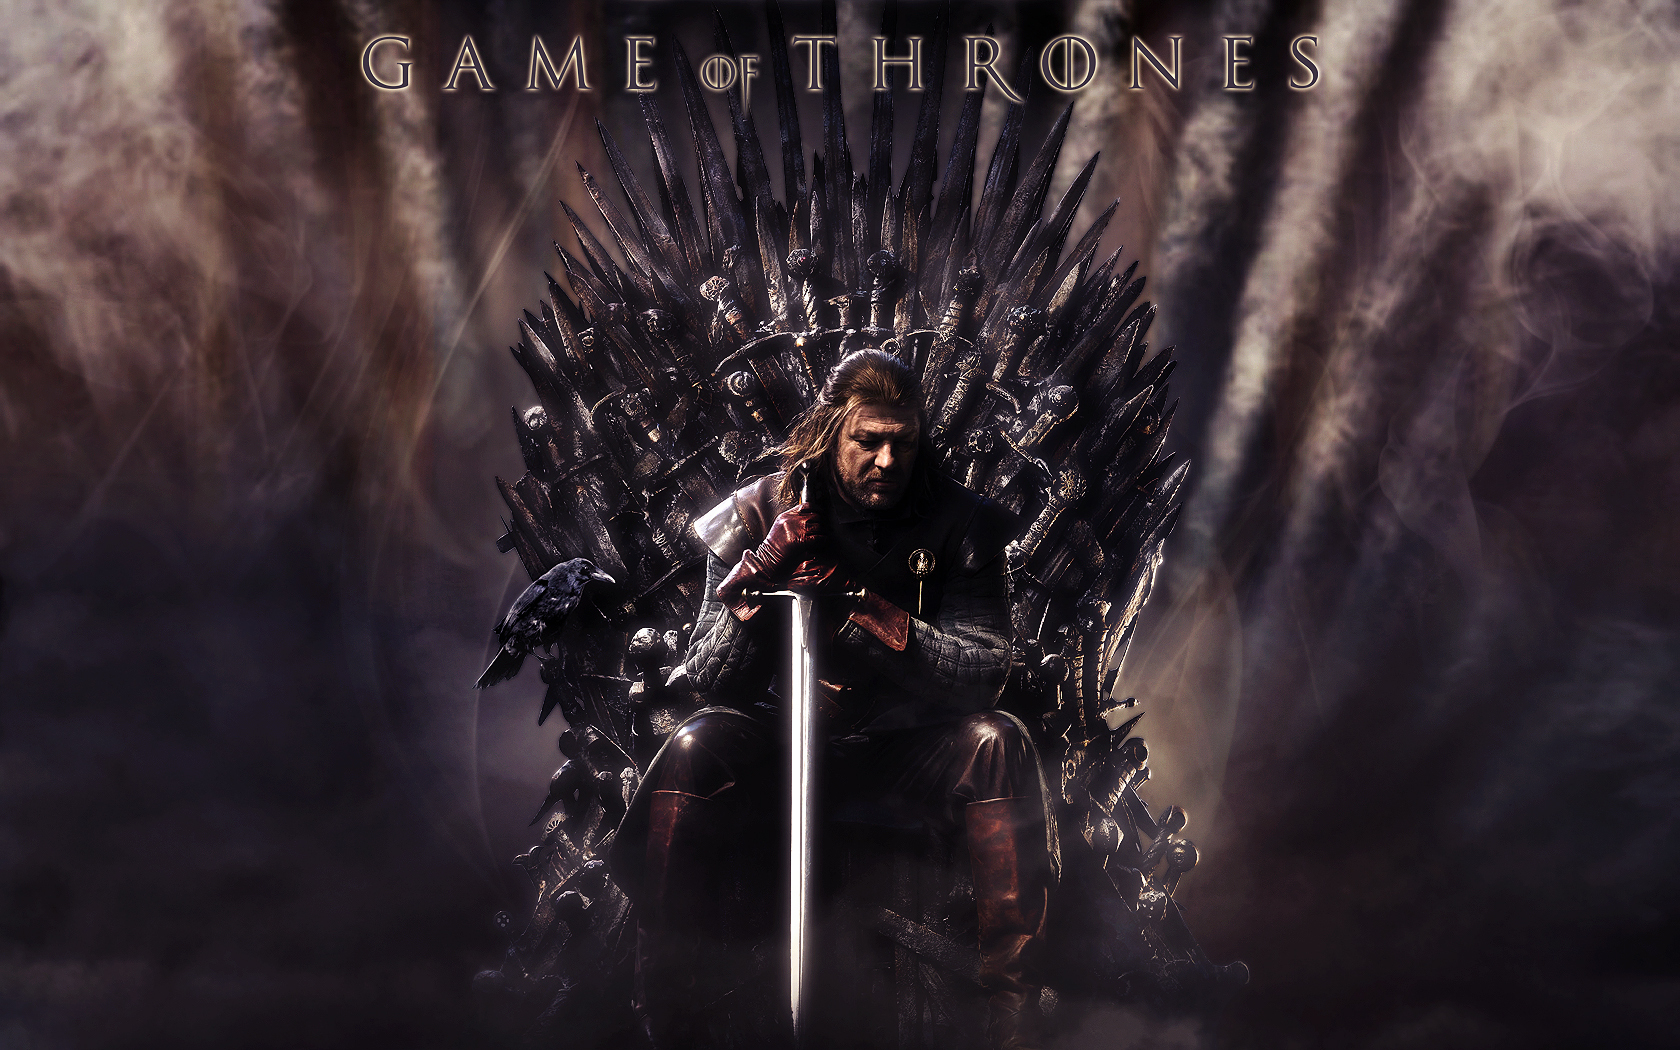 Game of Thrones - Game of Thrones Wallpaper (20131987) - Fanpop